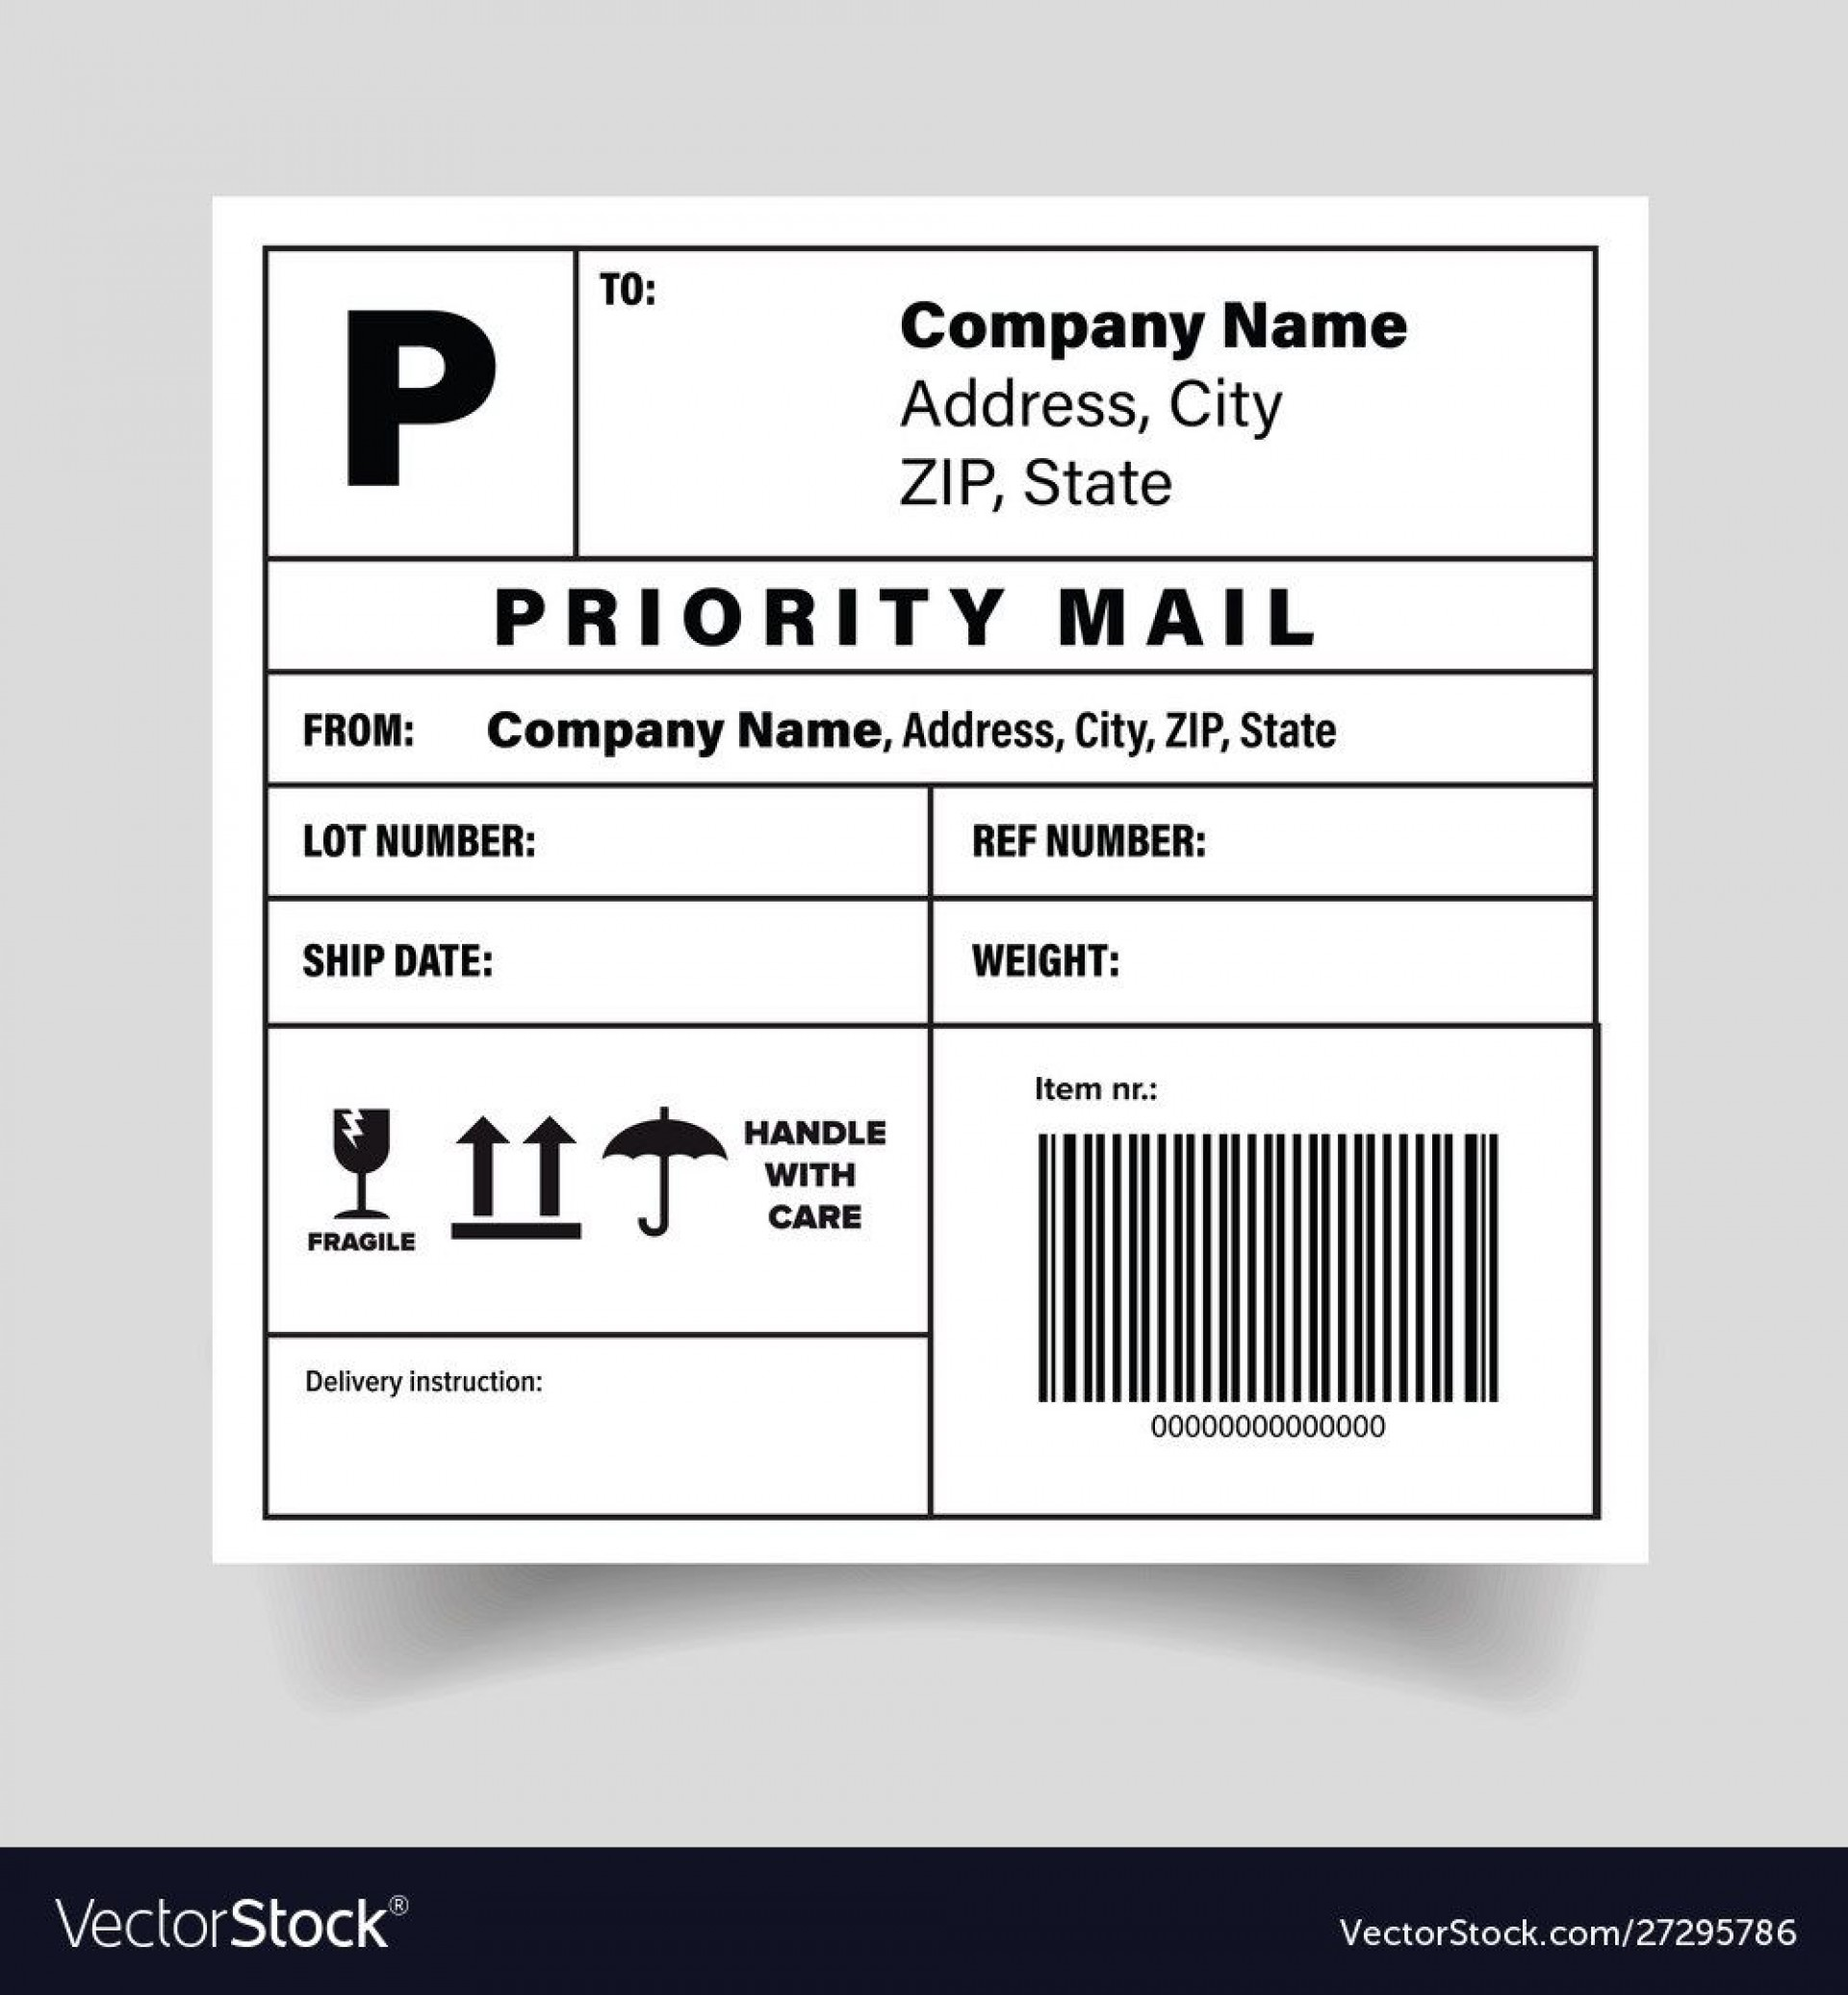 006 Exceptional Free Shipping Label Template High Def  Format Word For Mac1920